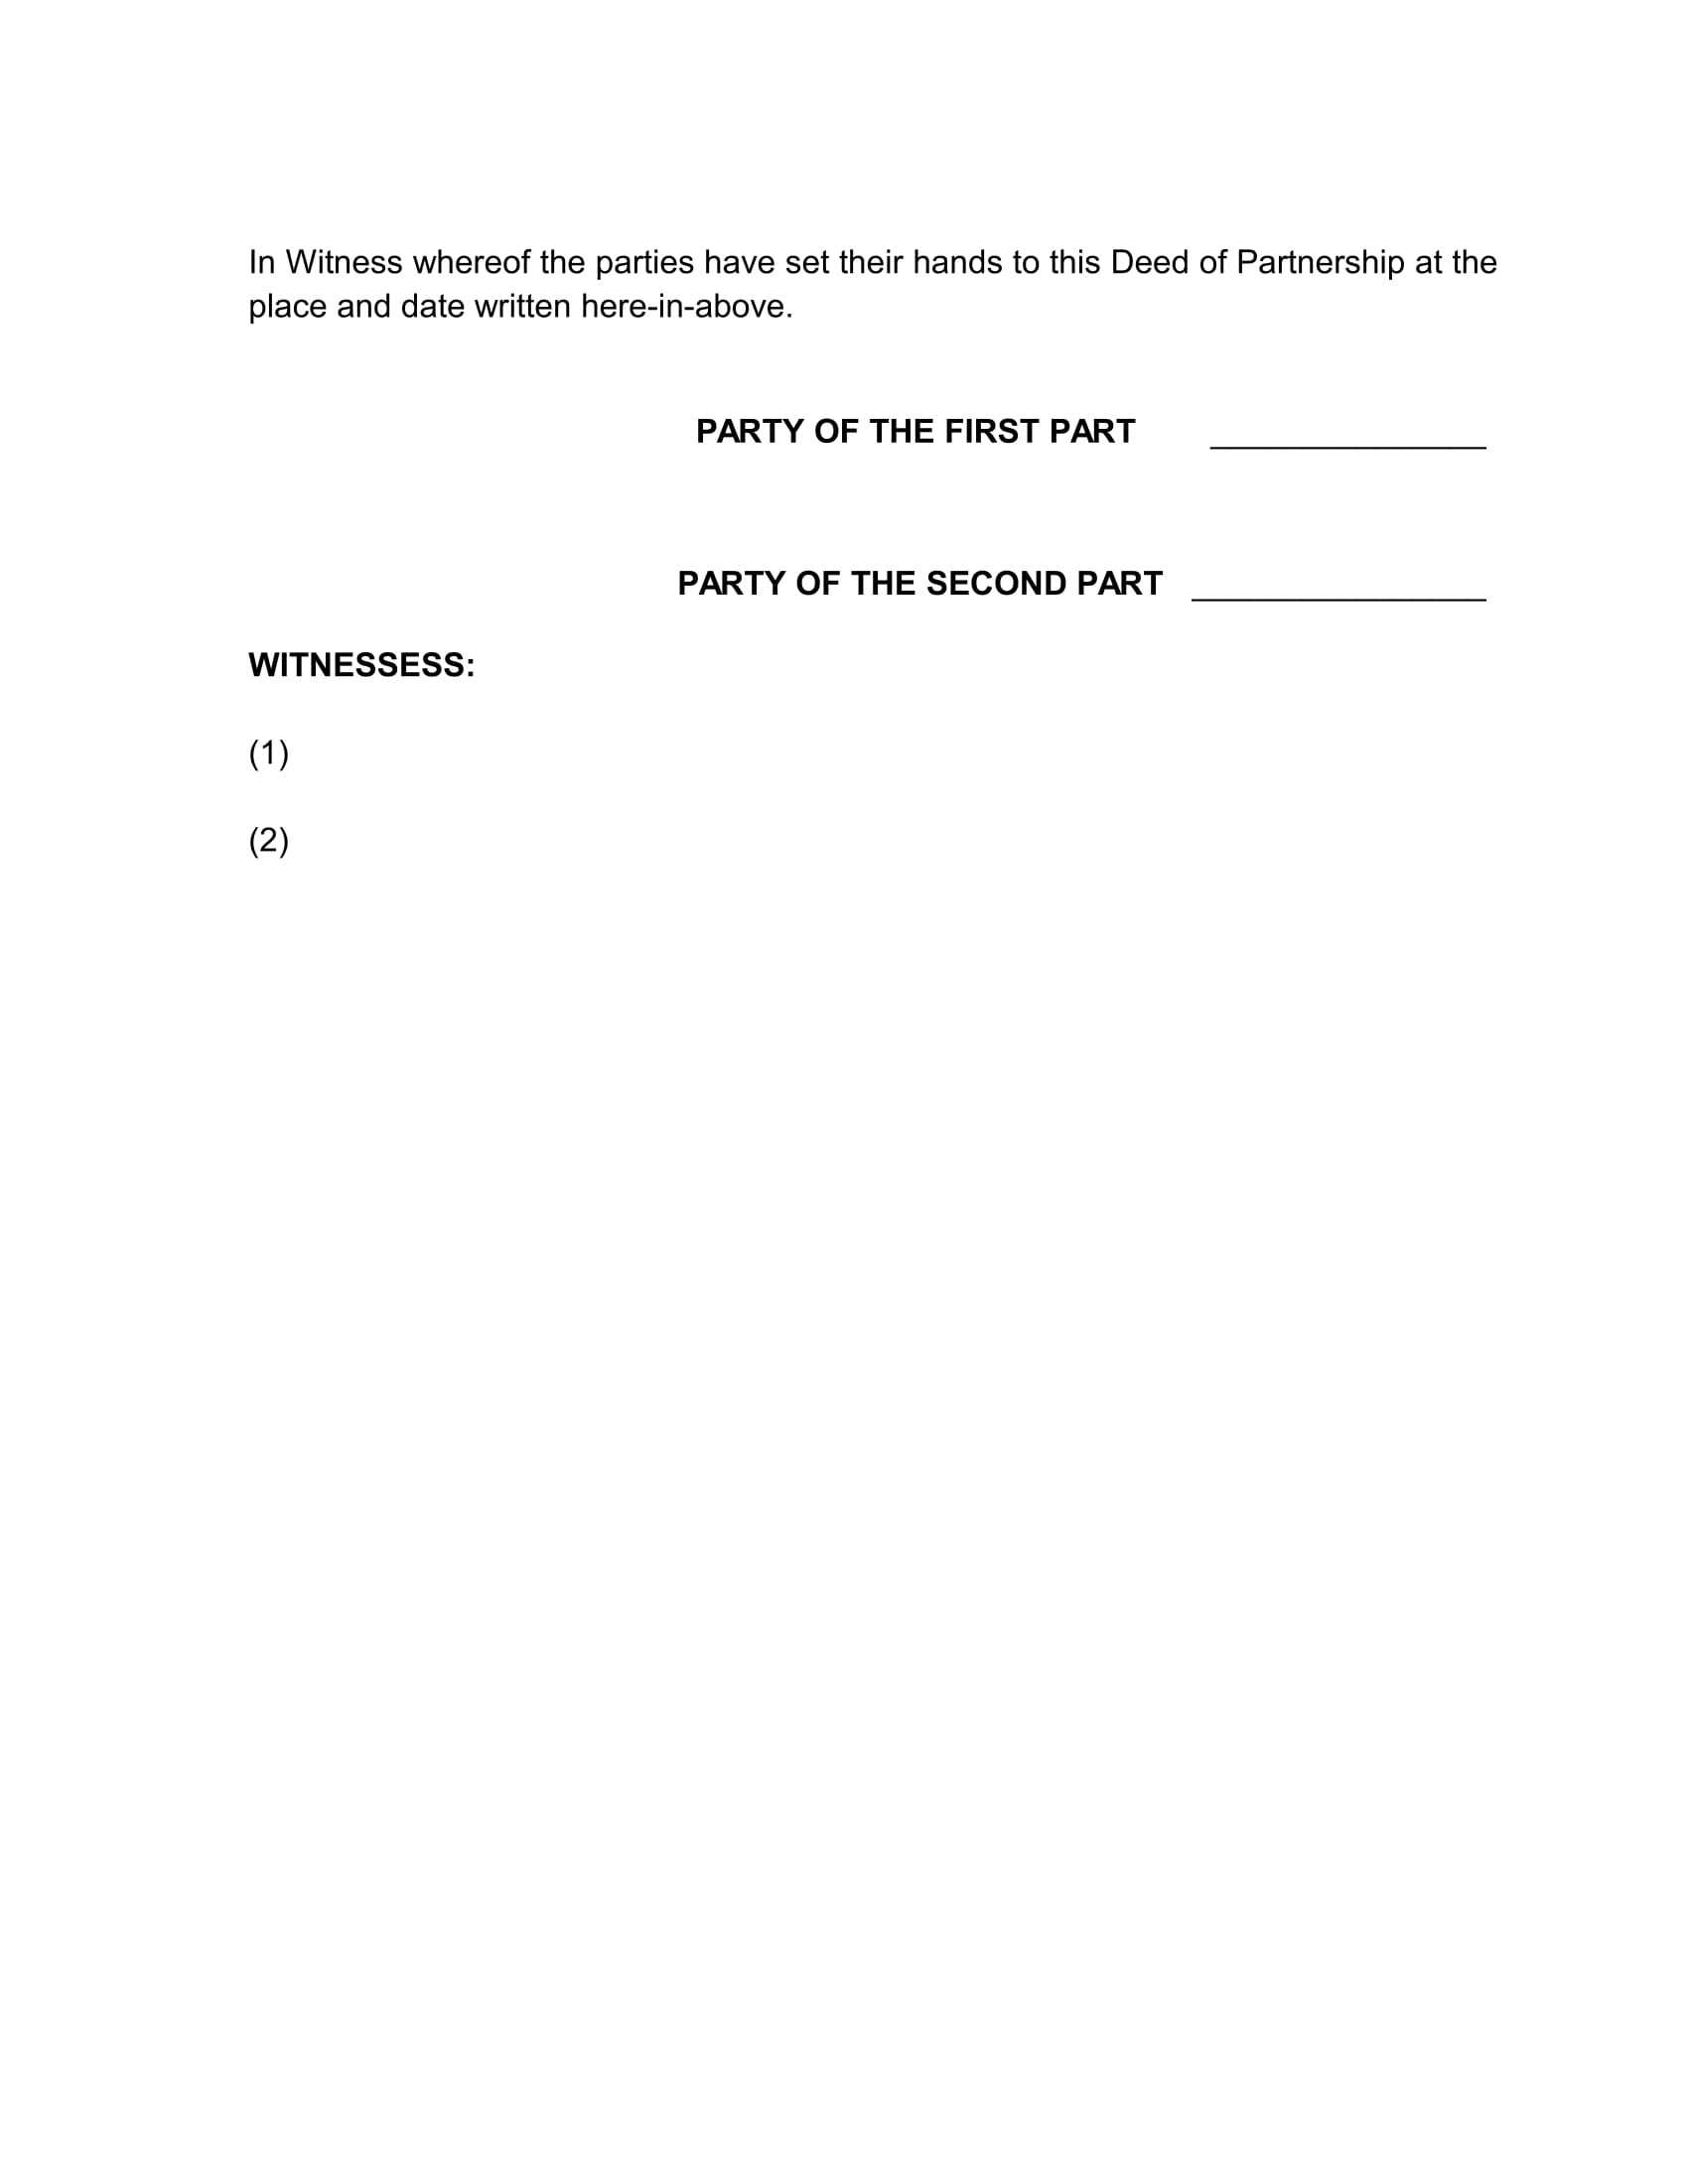 Partnership Deed Format-4.jpg